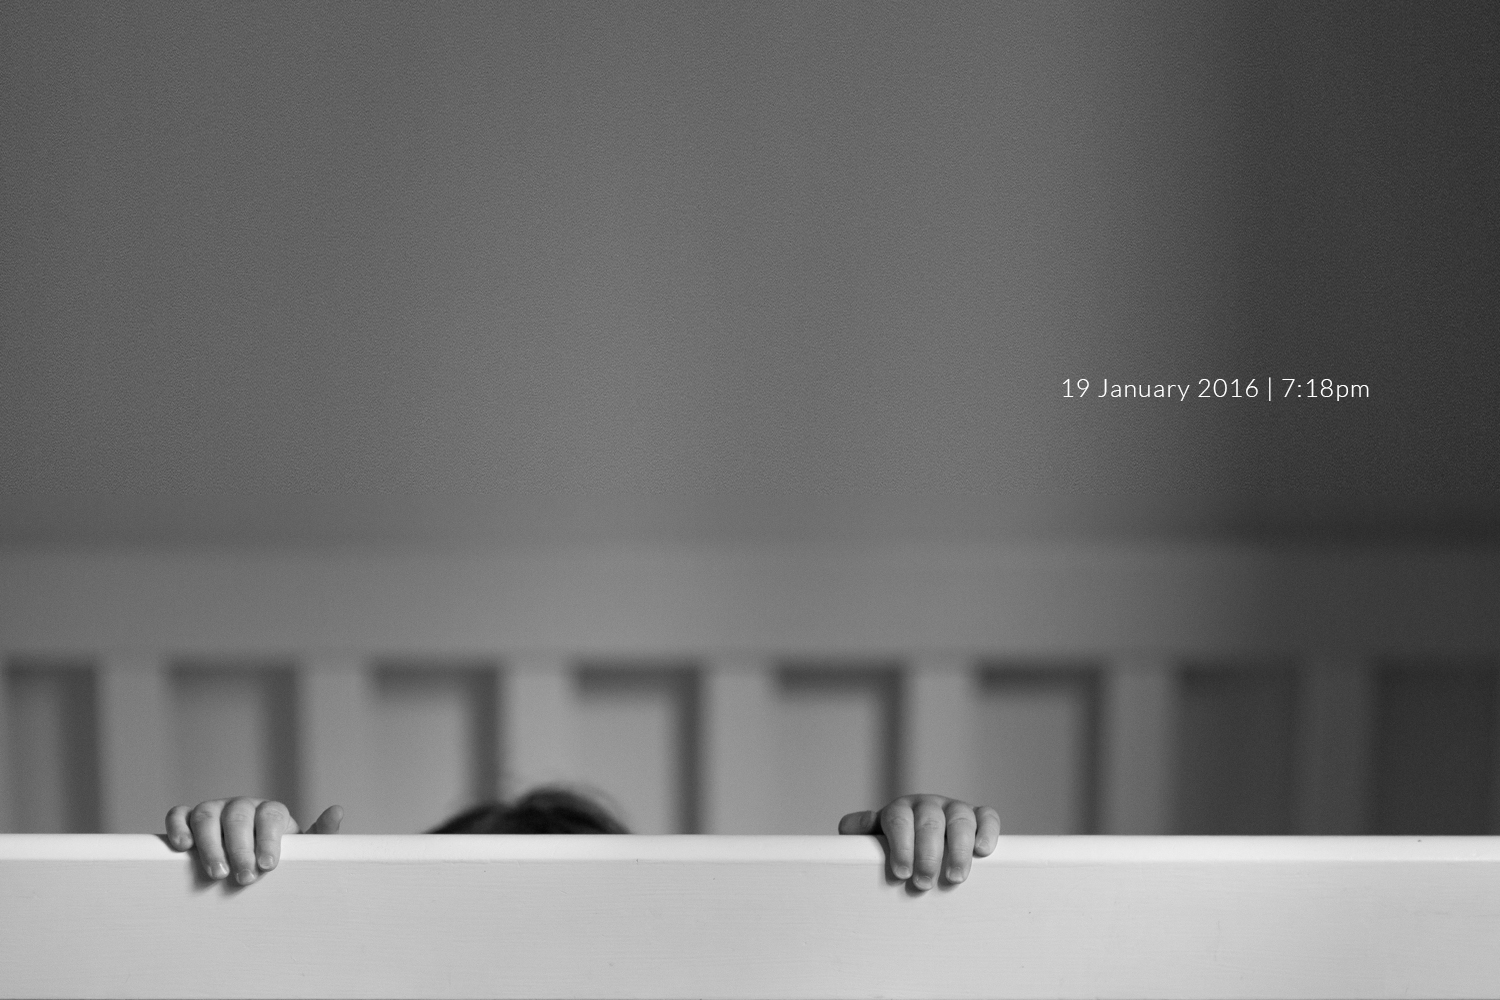 baby-in-cot-photo-a-day-project-day-19.jpg